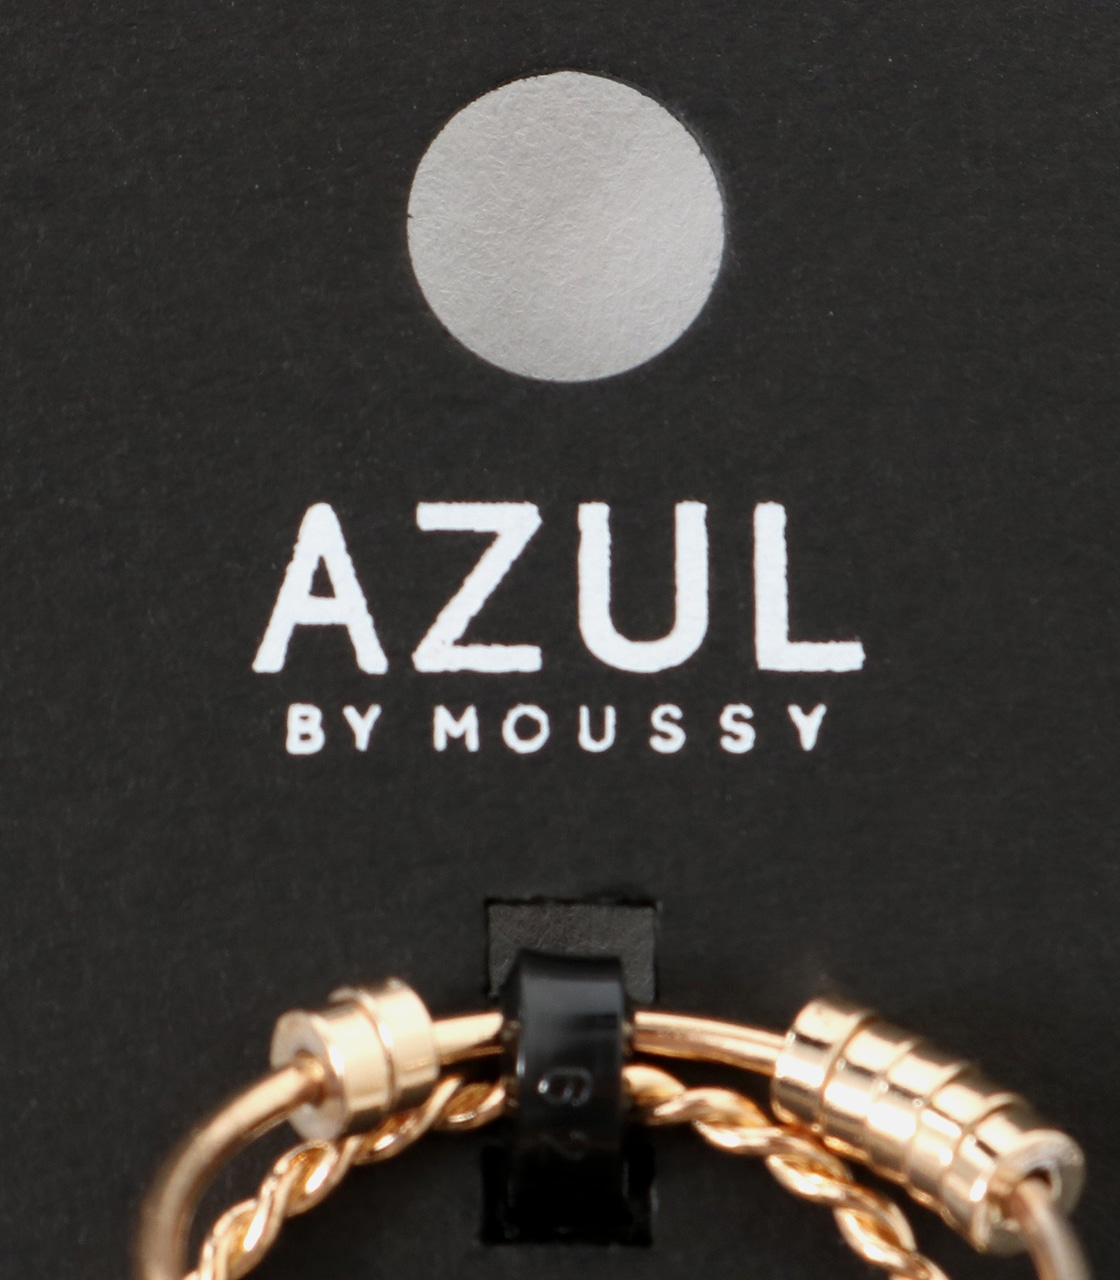 【AZUL BY MOUSSY】マルチモチーフ7本SETリング 詳細画像 L/GLD 9